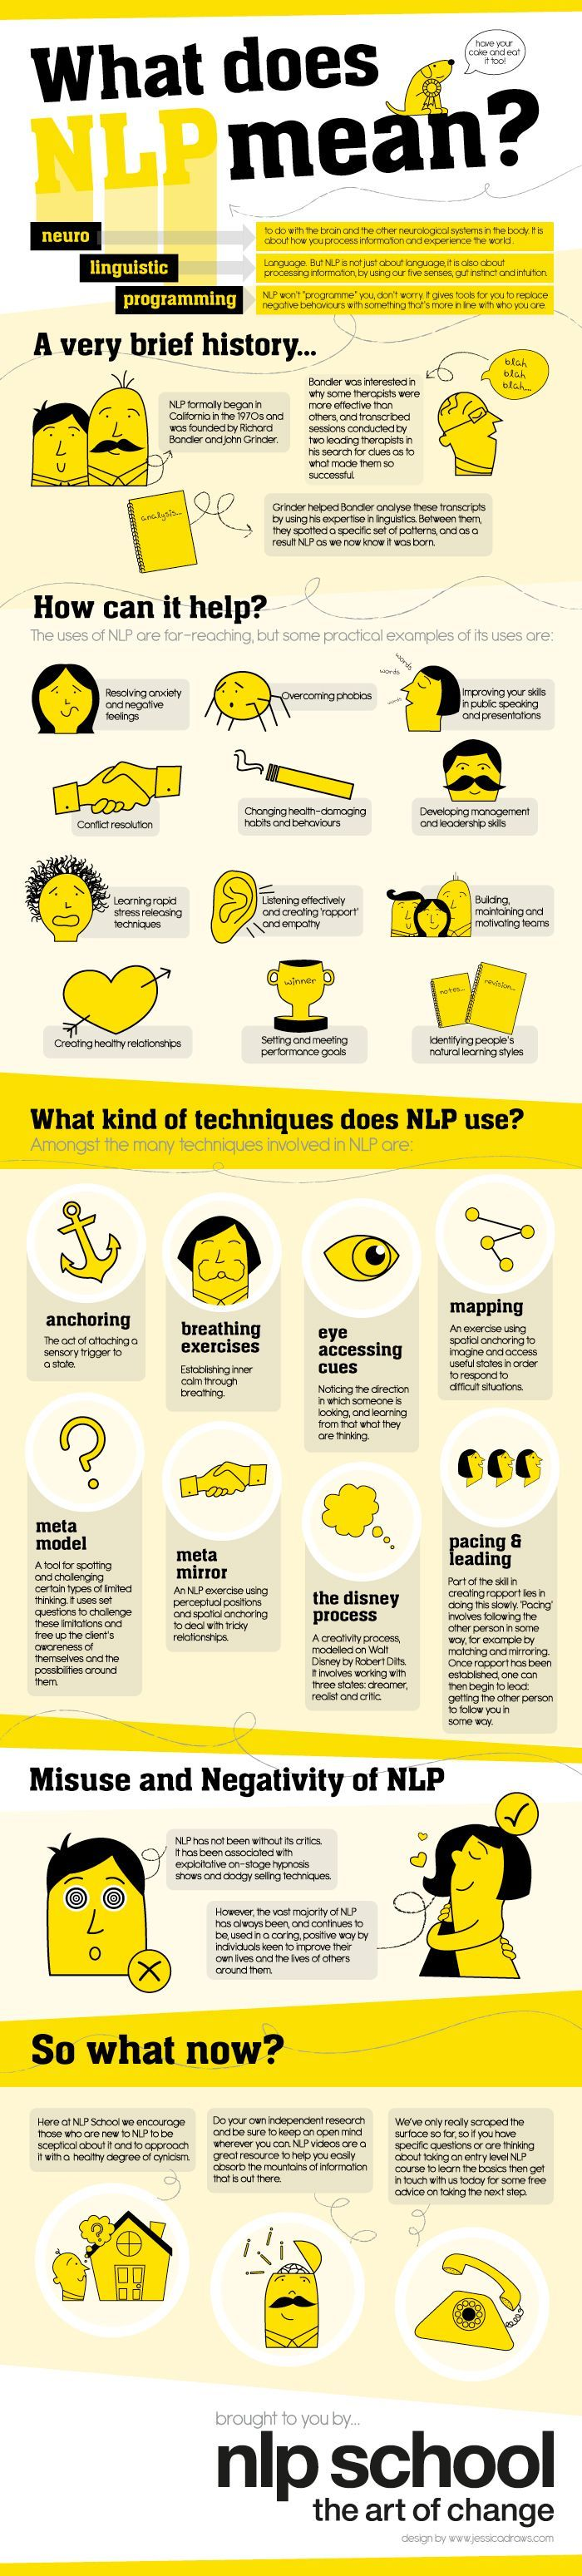 What Does Neurolinguisitc Programming #NLP Mean? #infographic #coaching: